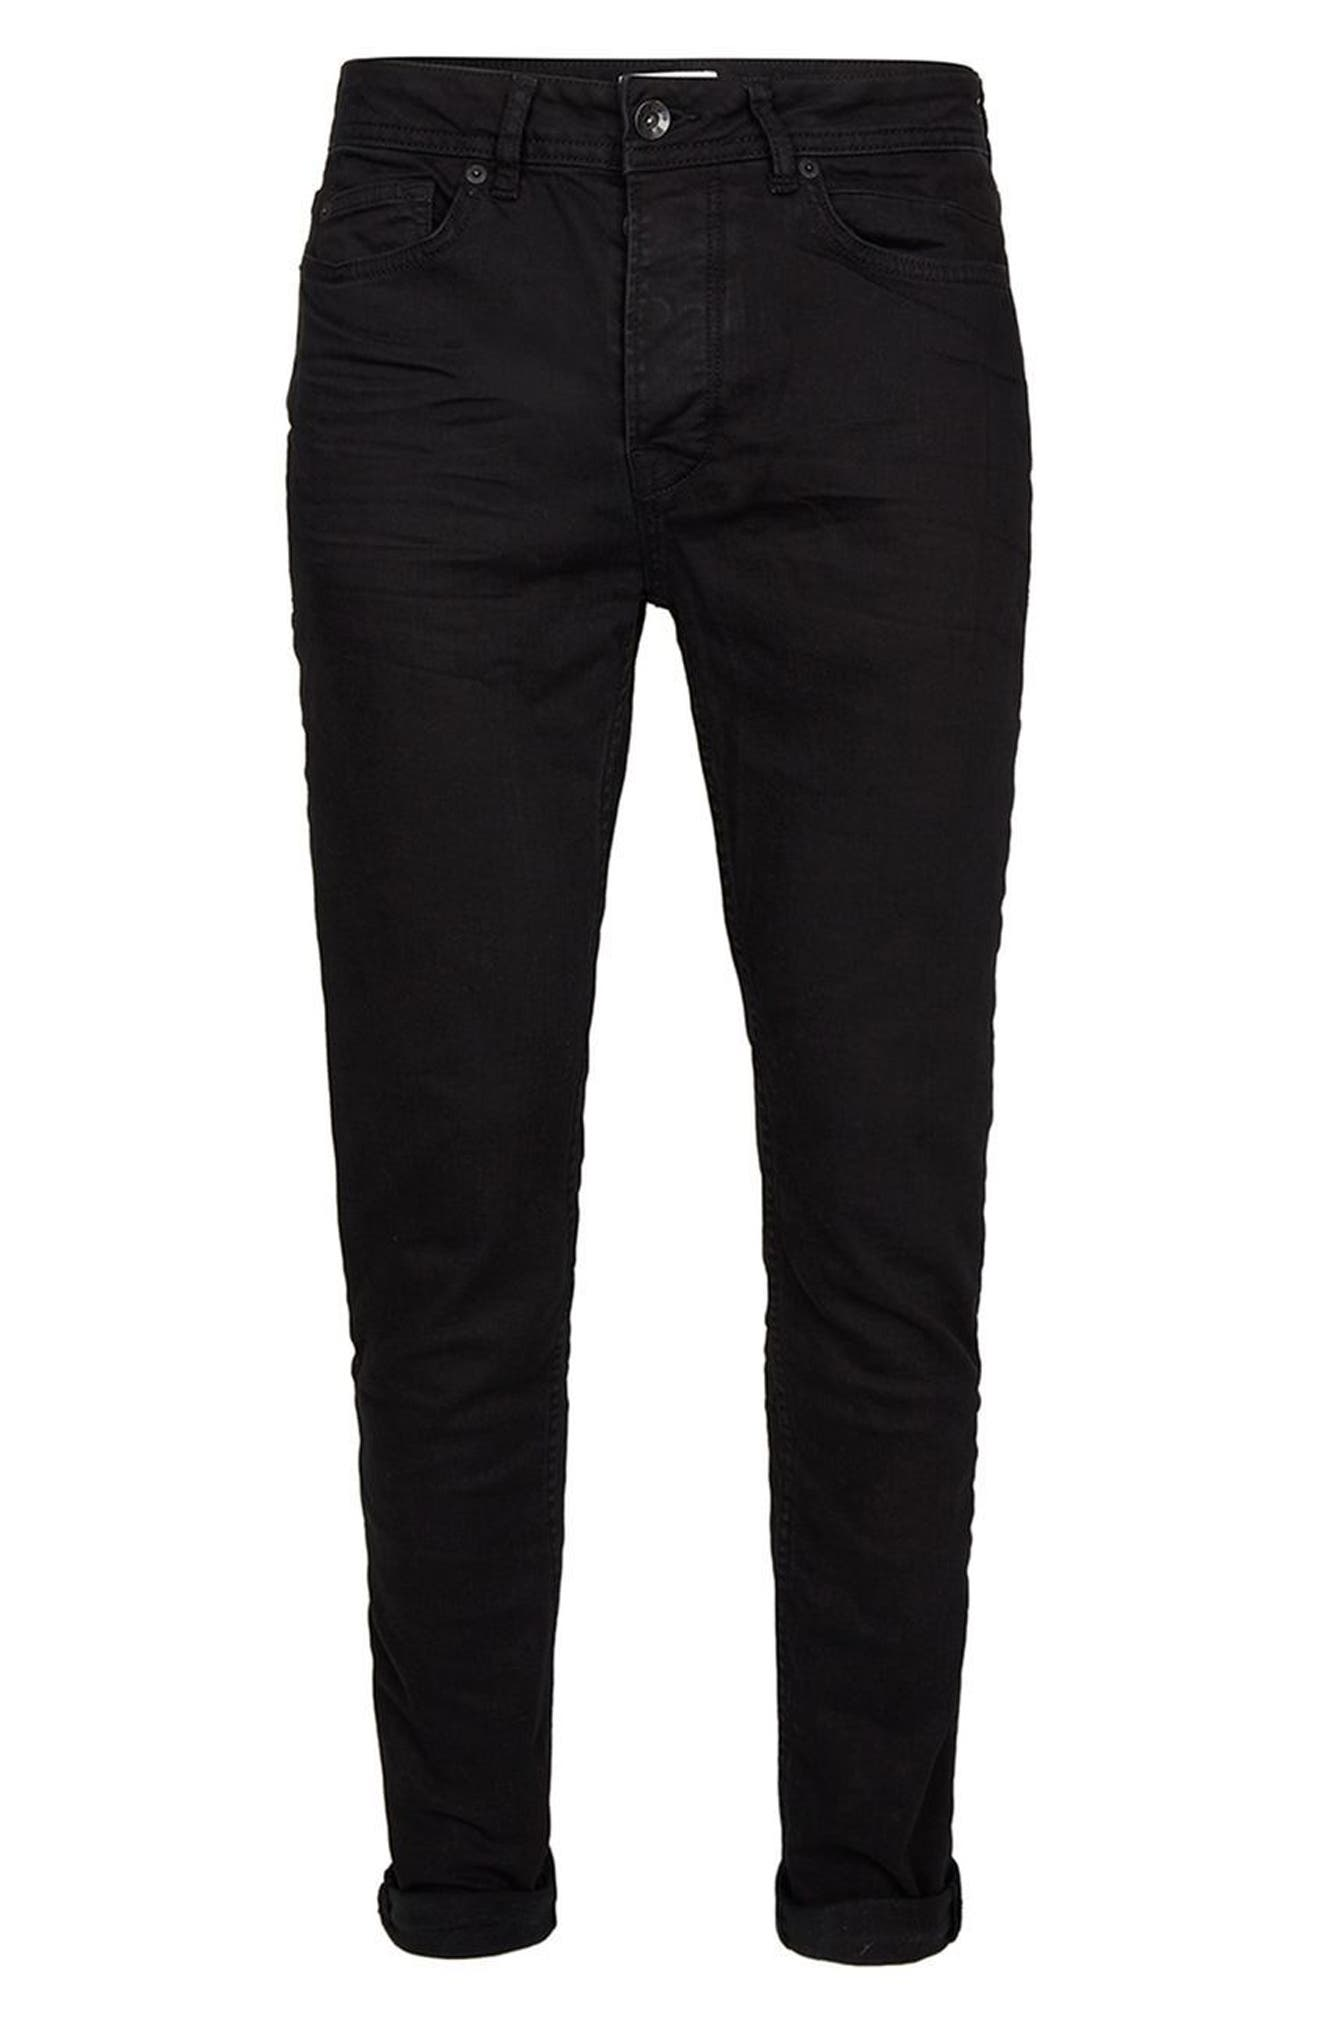 TOPMAN,                             Overdyed Stretch Skinny Jeans,                             Alternate thumbnail 4, color,                             001